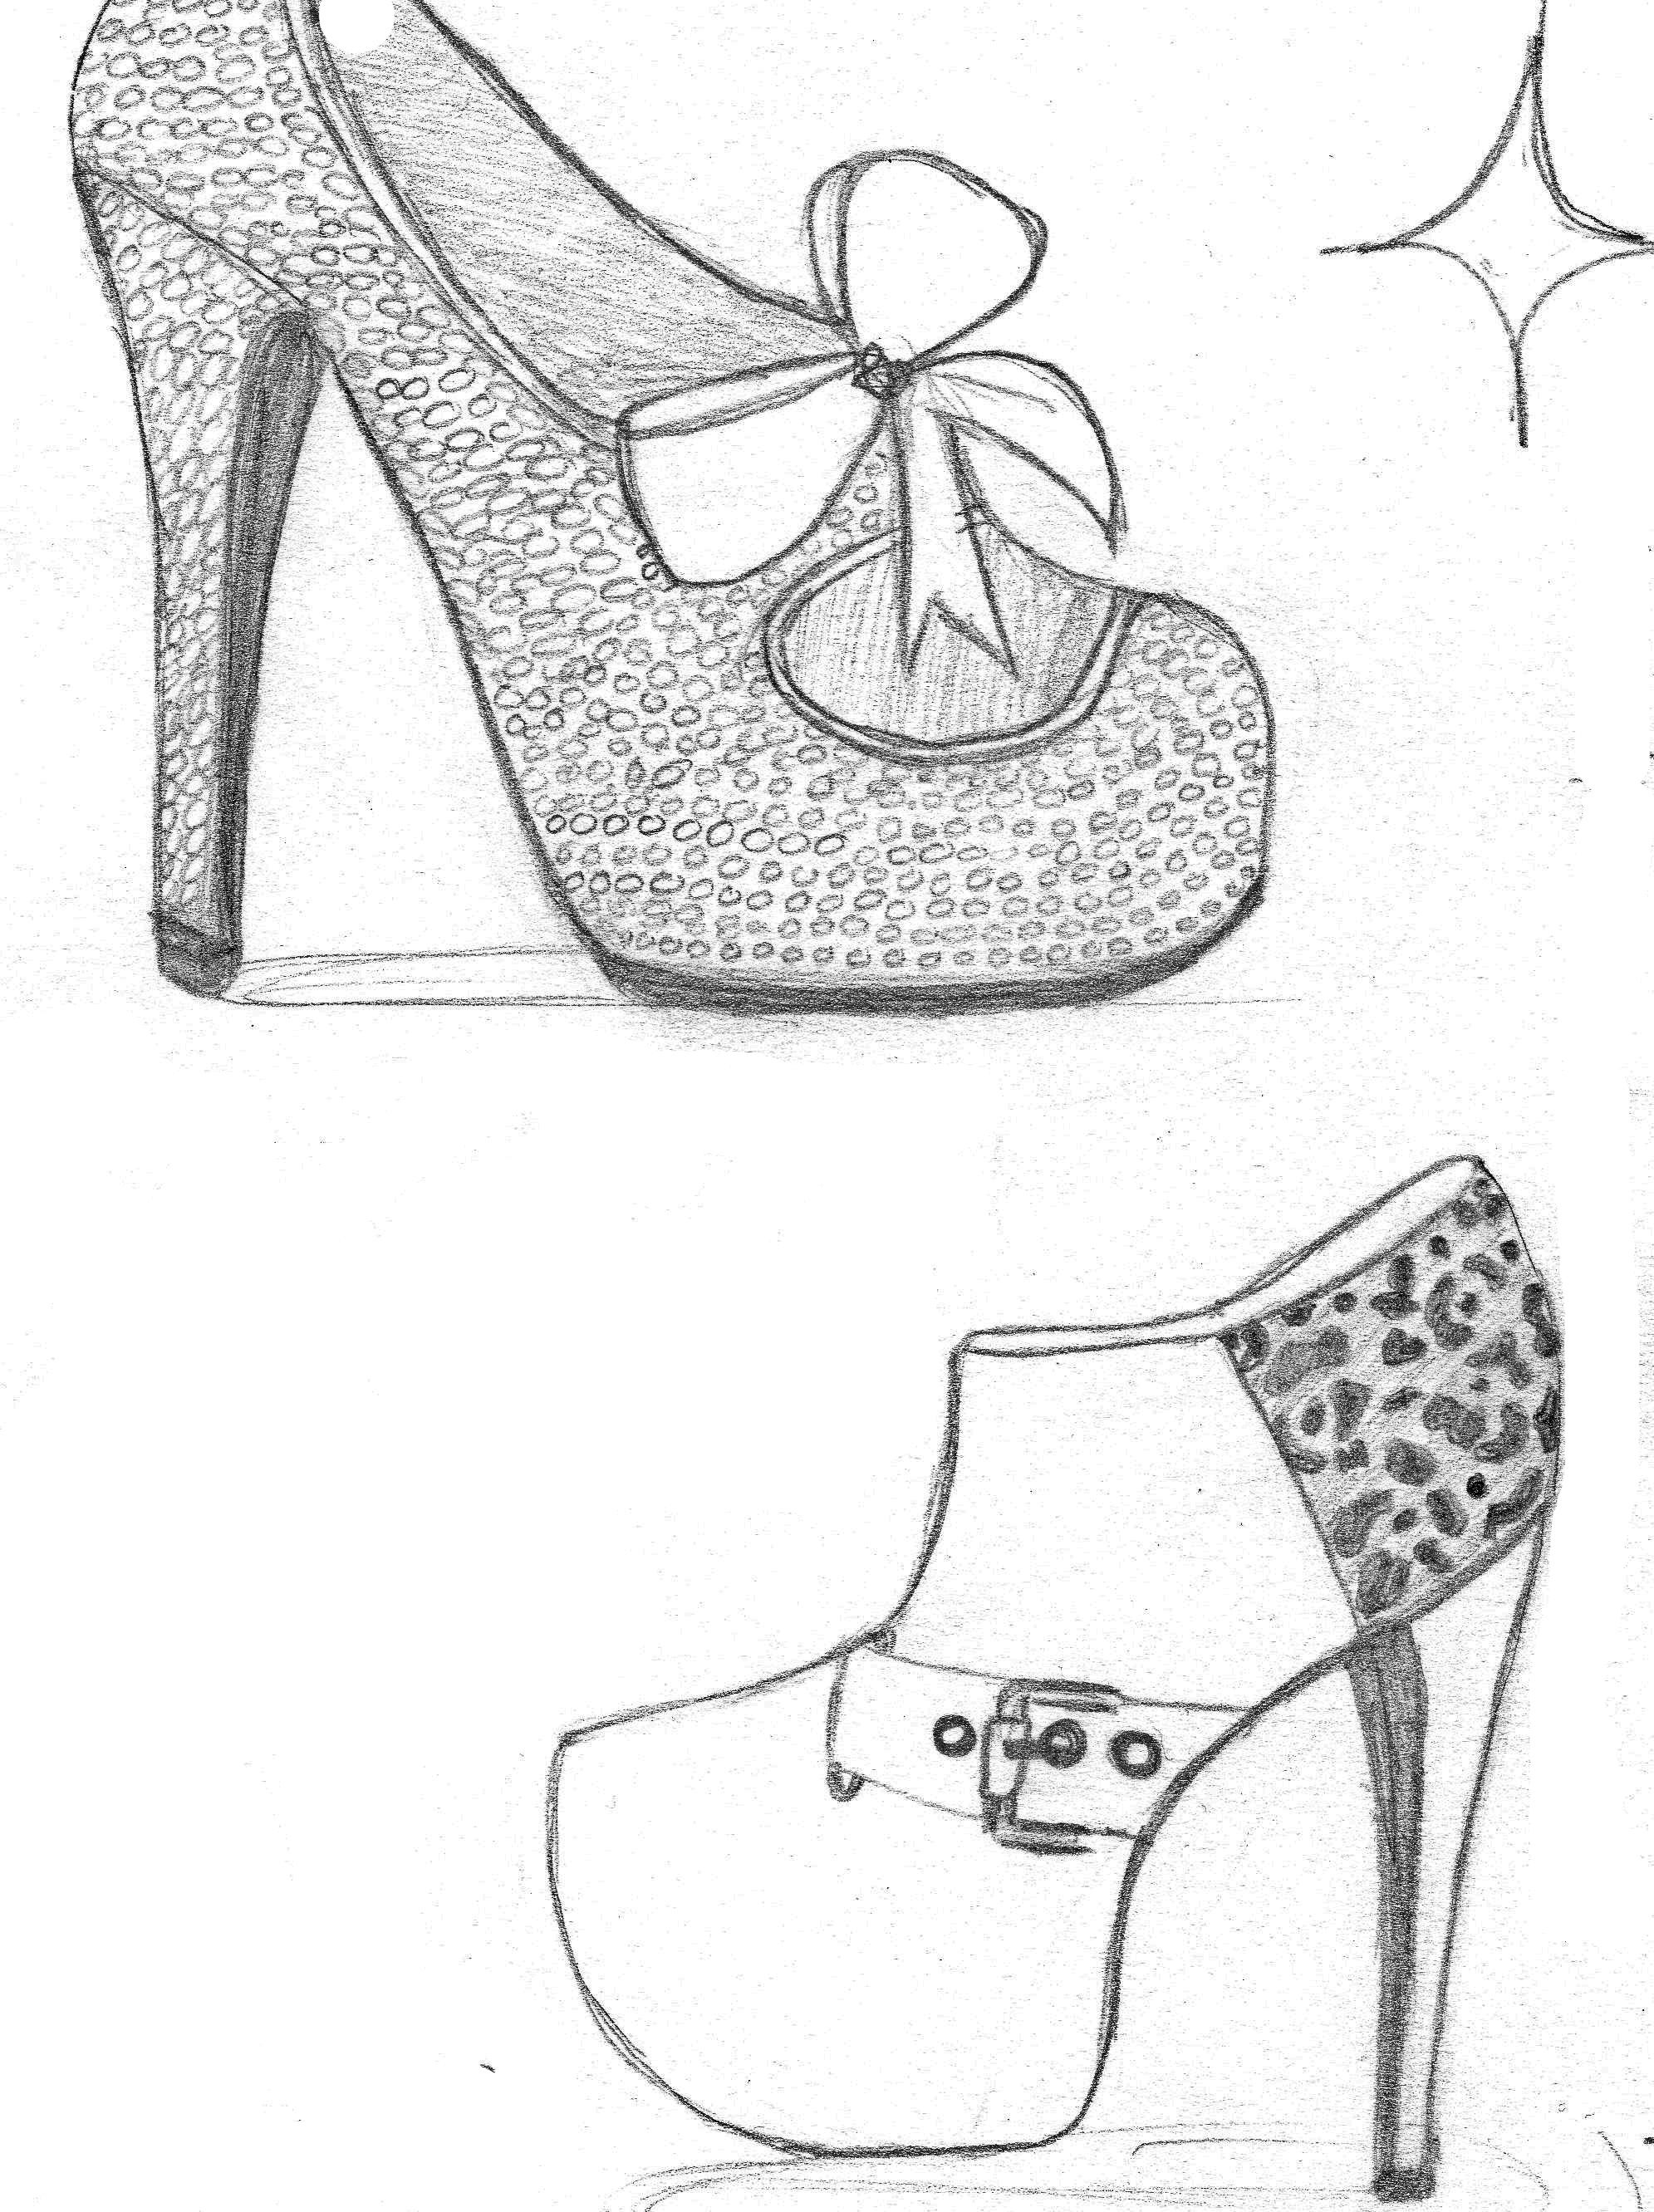 how to draw a high heel step by step high heel drawing at getdrawings free download a how step high to heel draw step by